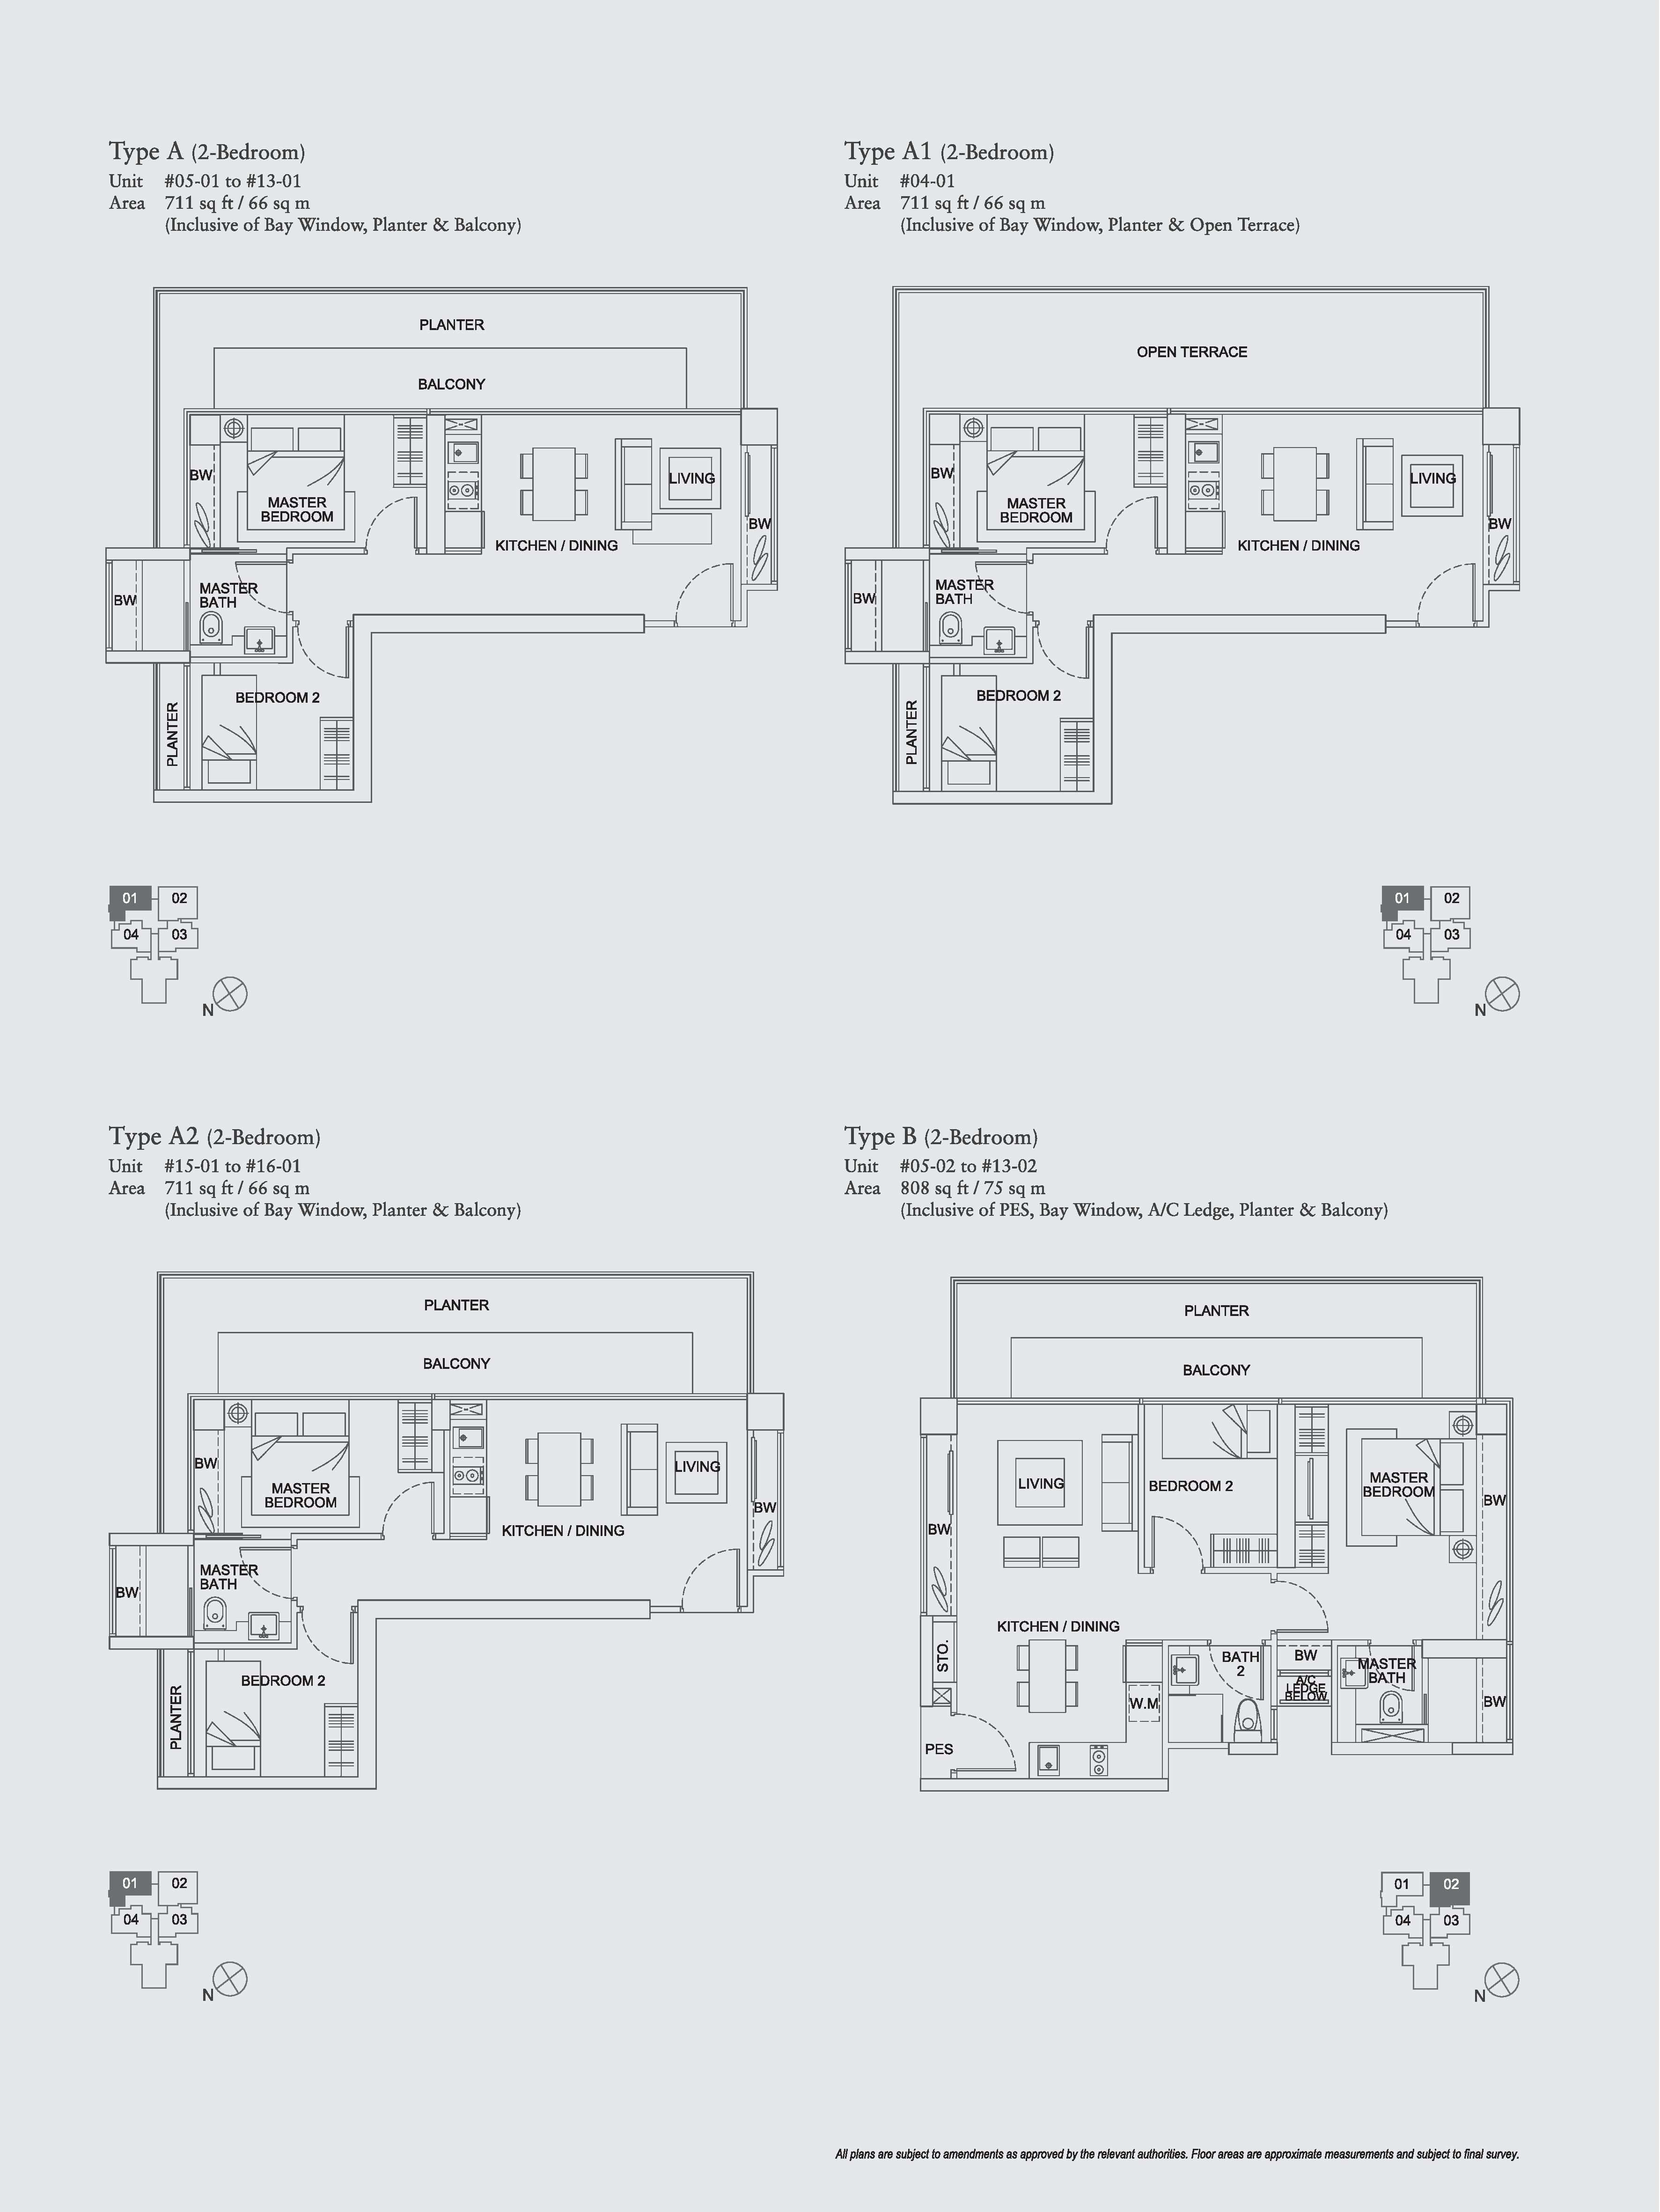 The Aristo 2 Bedroom Floor Plans Type A, A1, A2, B